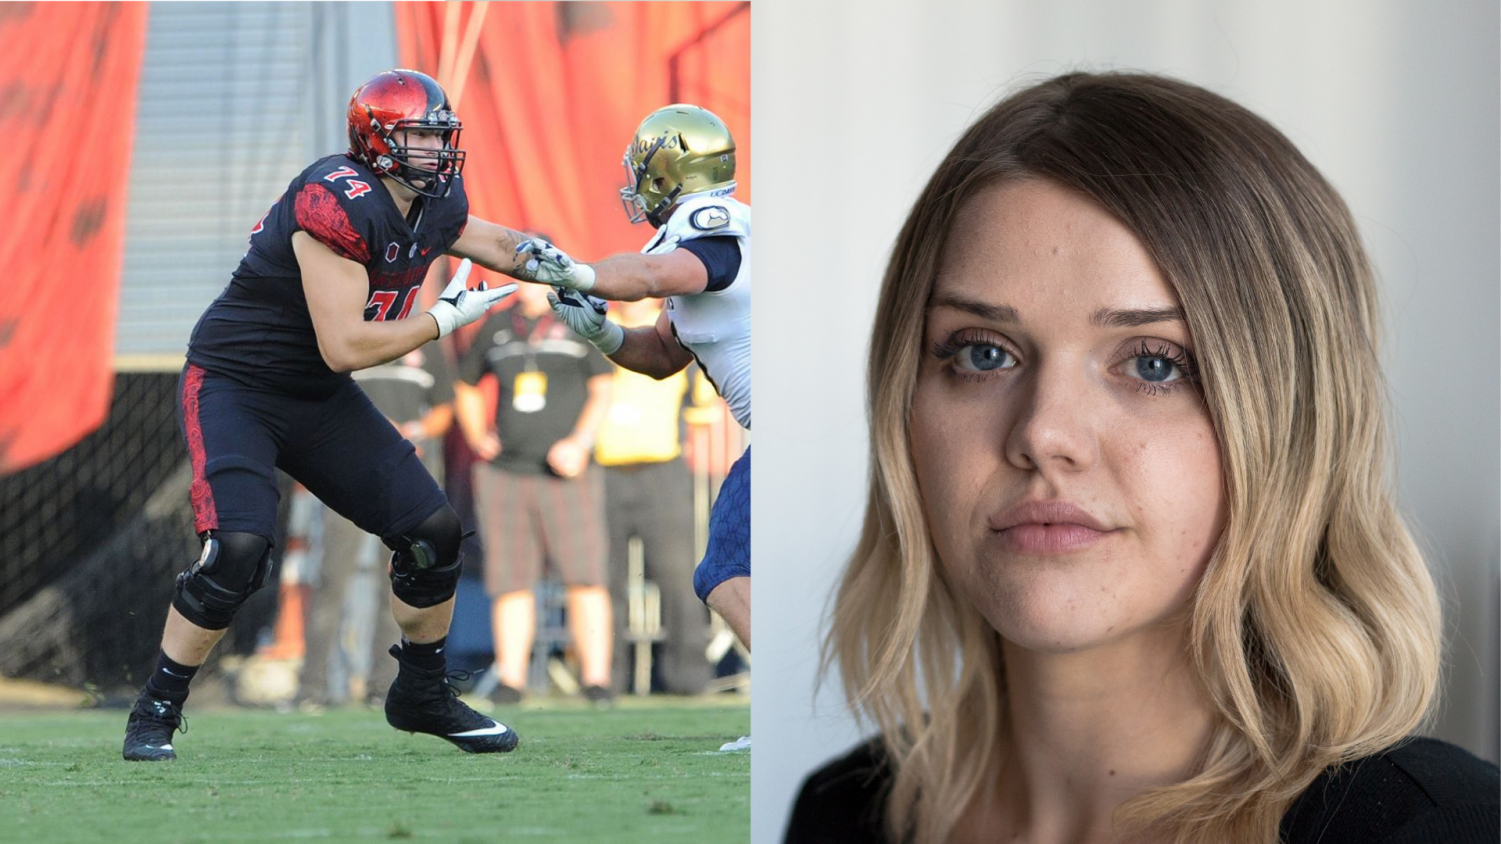 (Left) Tyler Roemer, former Aztecs left tackle. Courtesy of SDSU Athletics. (Right) Carly Heppler, communications senior who is accusing Romer of emotional and physical abuse.